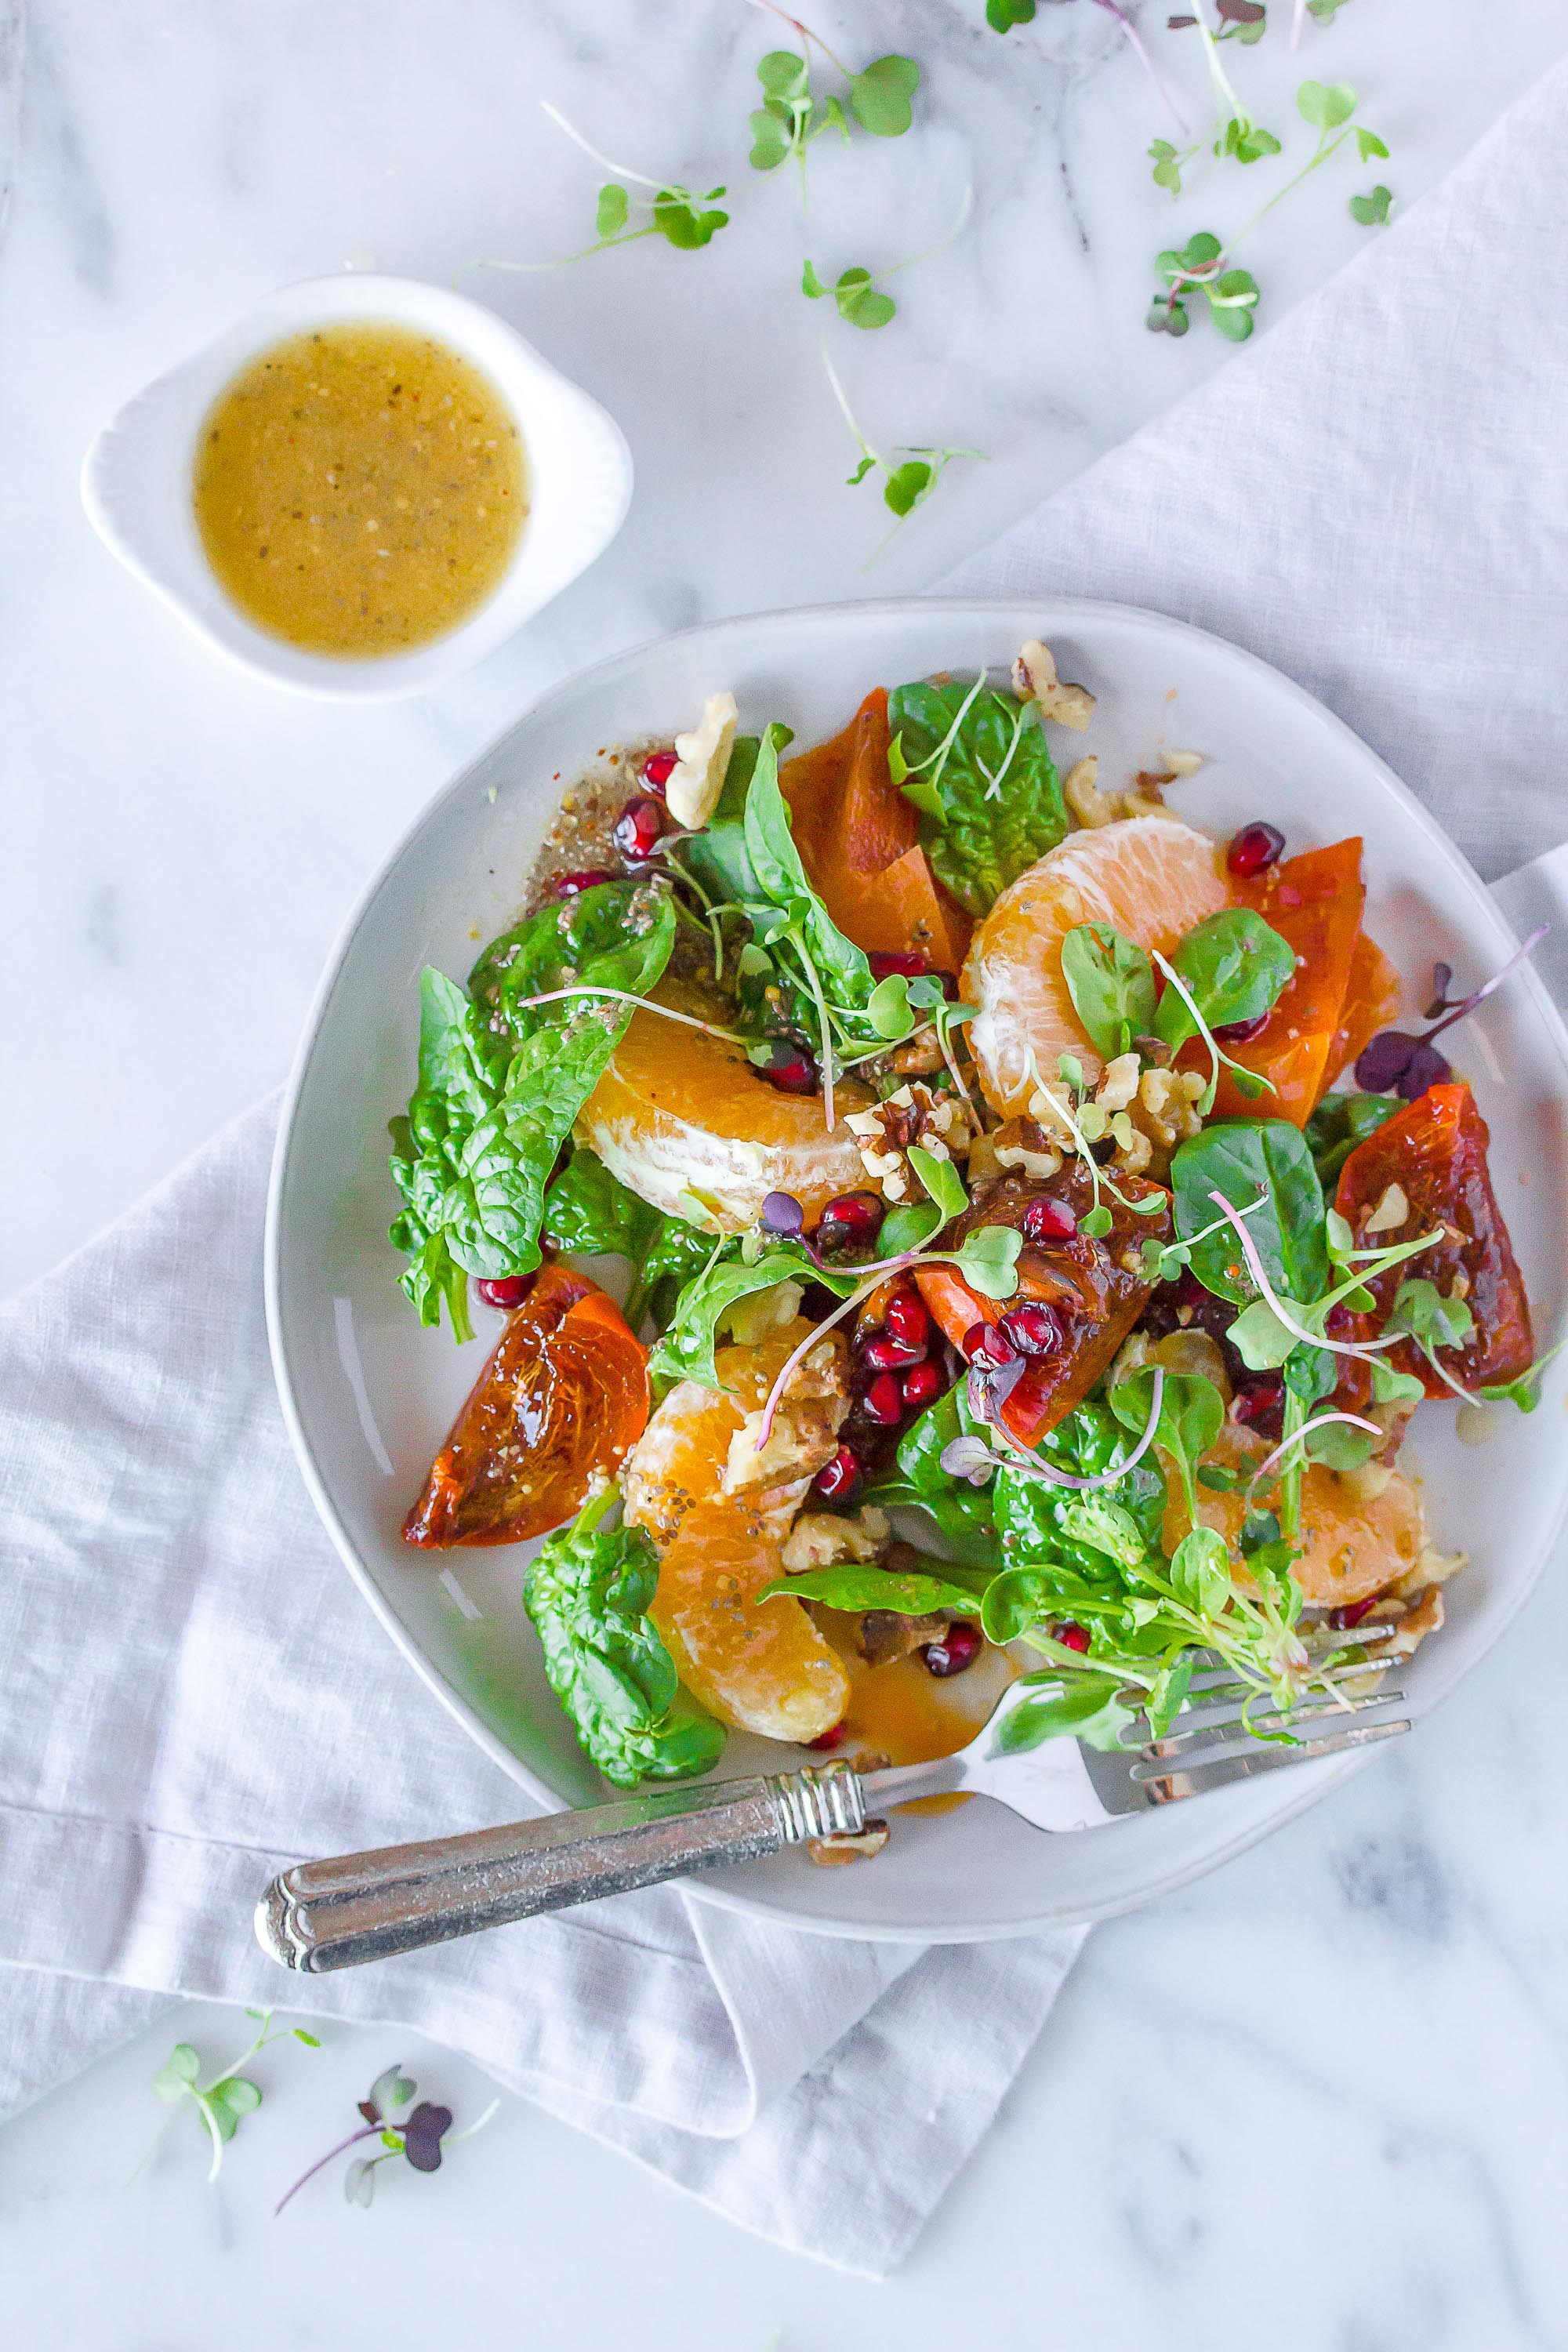 Persimmon, Pomegranate and Winter Citrus Salad with orange ginger dressing